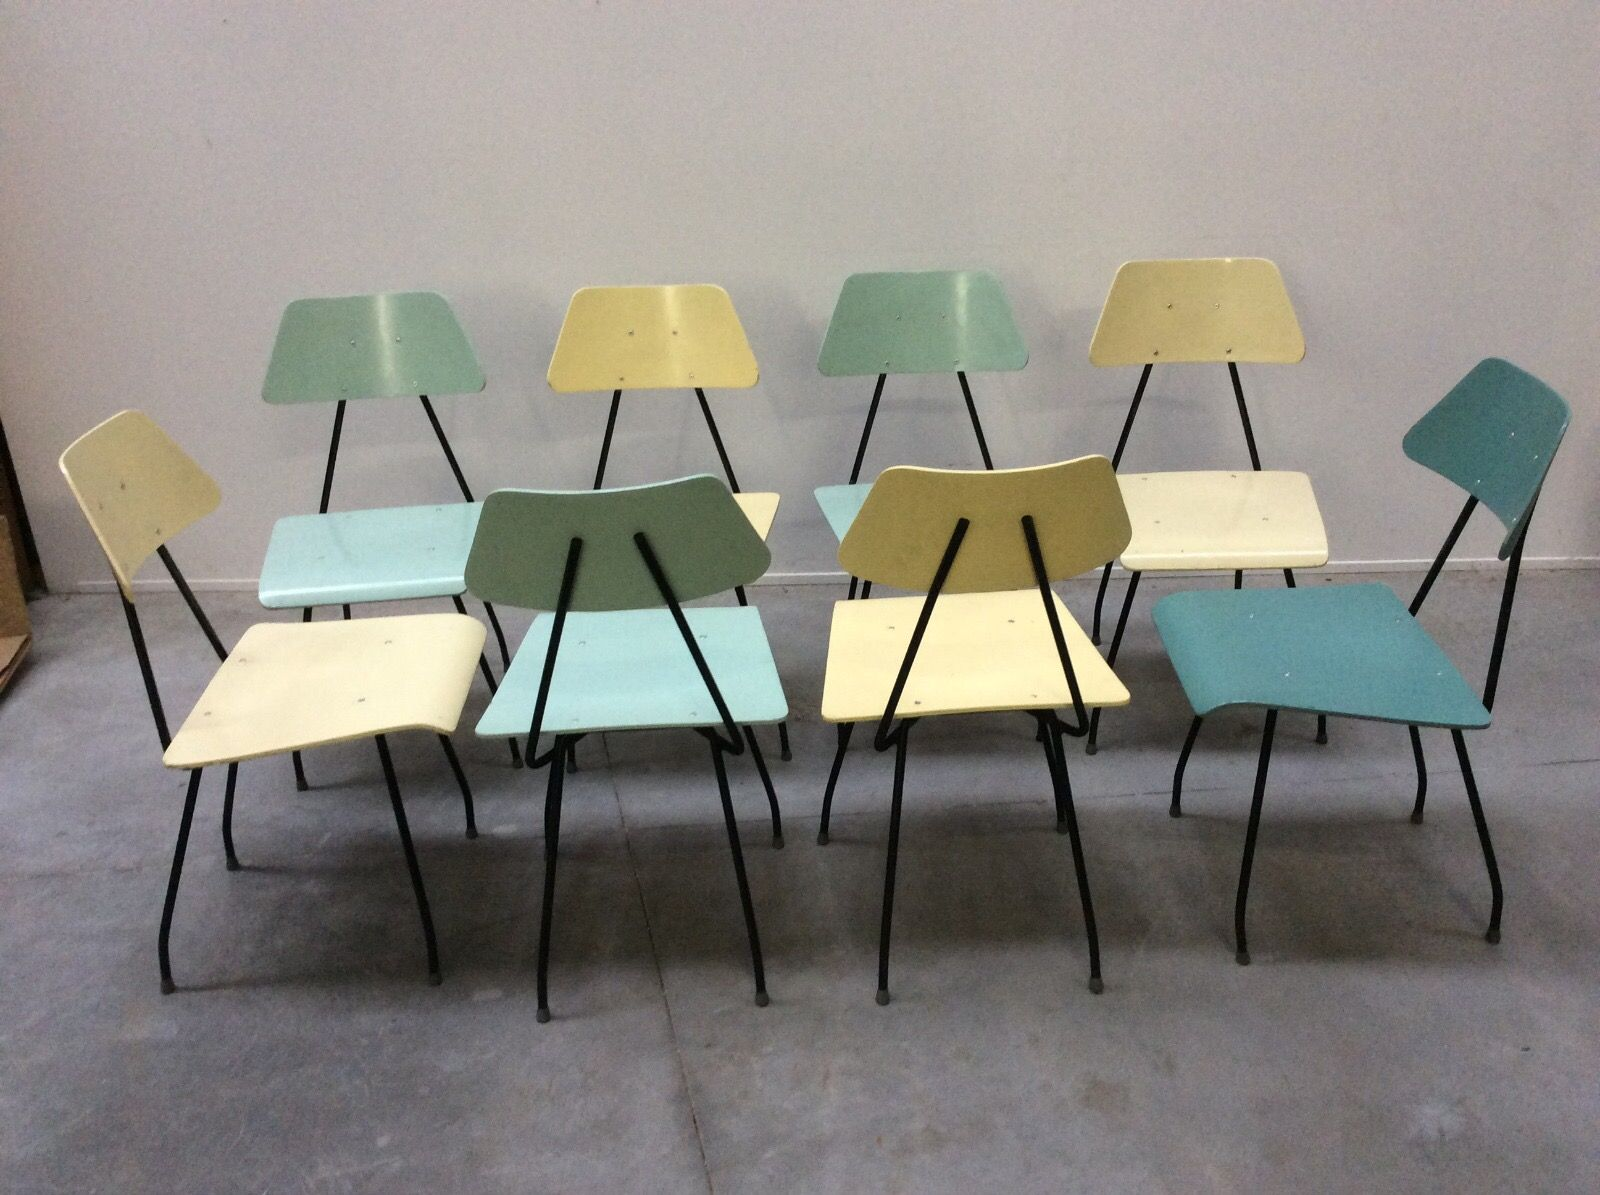 Exceptional Mid Century Dutch Multi Colored Chairs By Rob Parry For Dico, Set Of 4